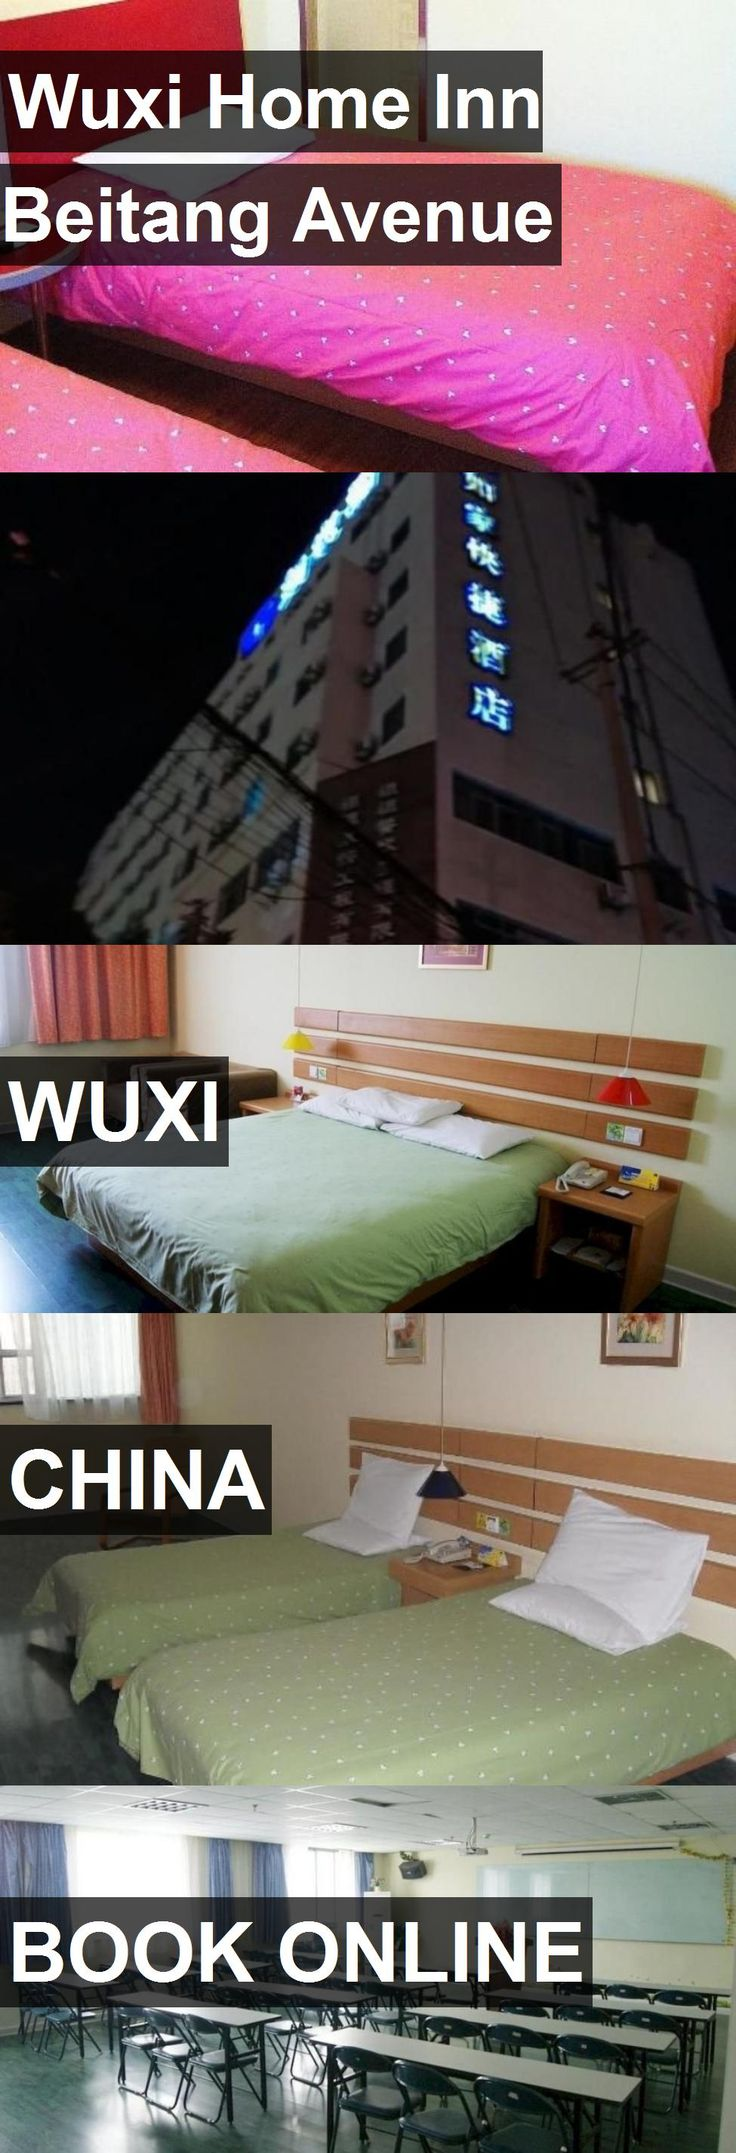 Hotel Wuxi Home Inn Beitang Avenue in Wuxi, China. For more information, photos, reviews and best prices please follow the link. #China #Wuxi #travel #vacation #hotel